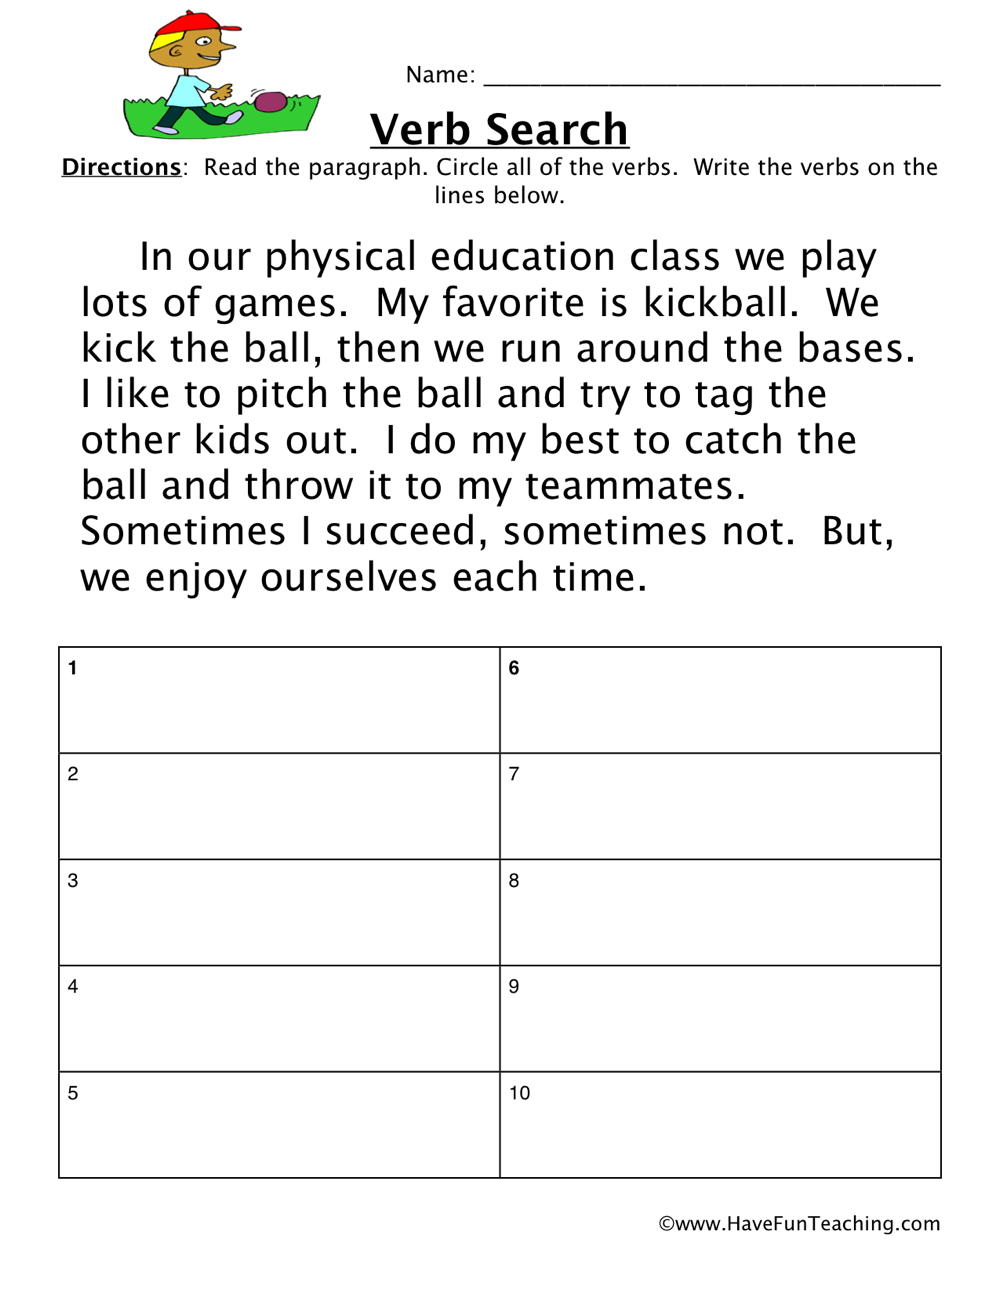 Verbs Worksheets - Page 4 of 4 - Have Fun Teaching